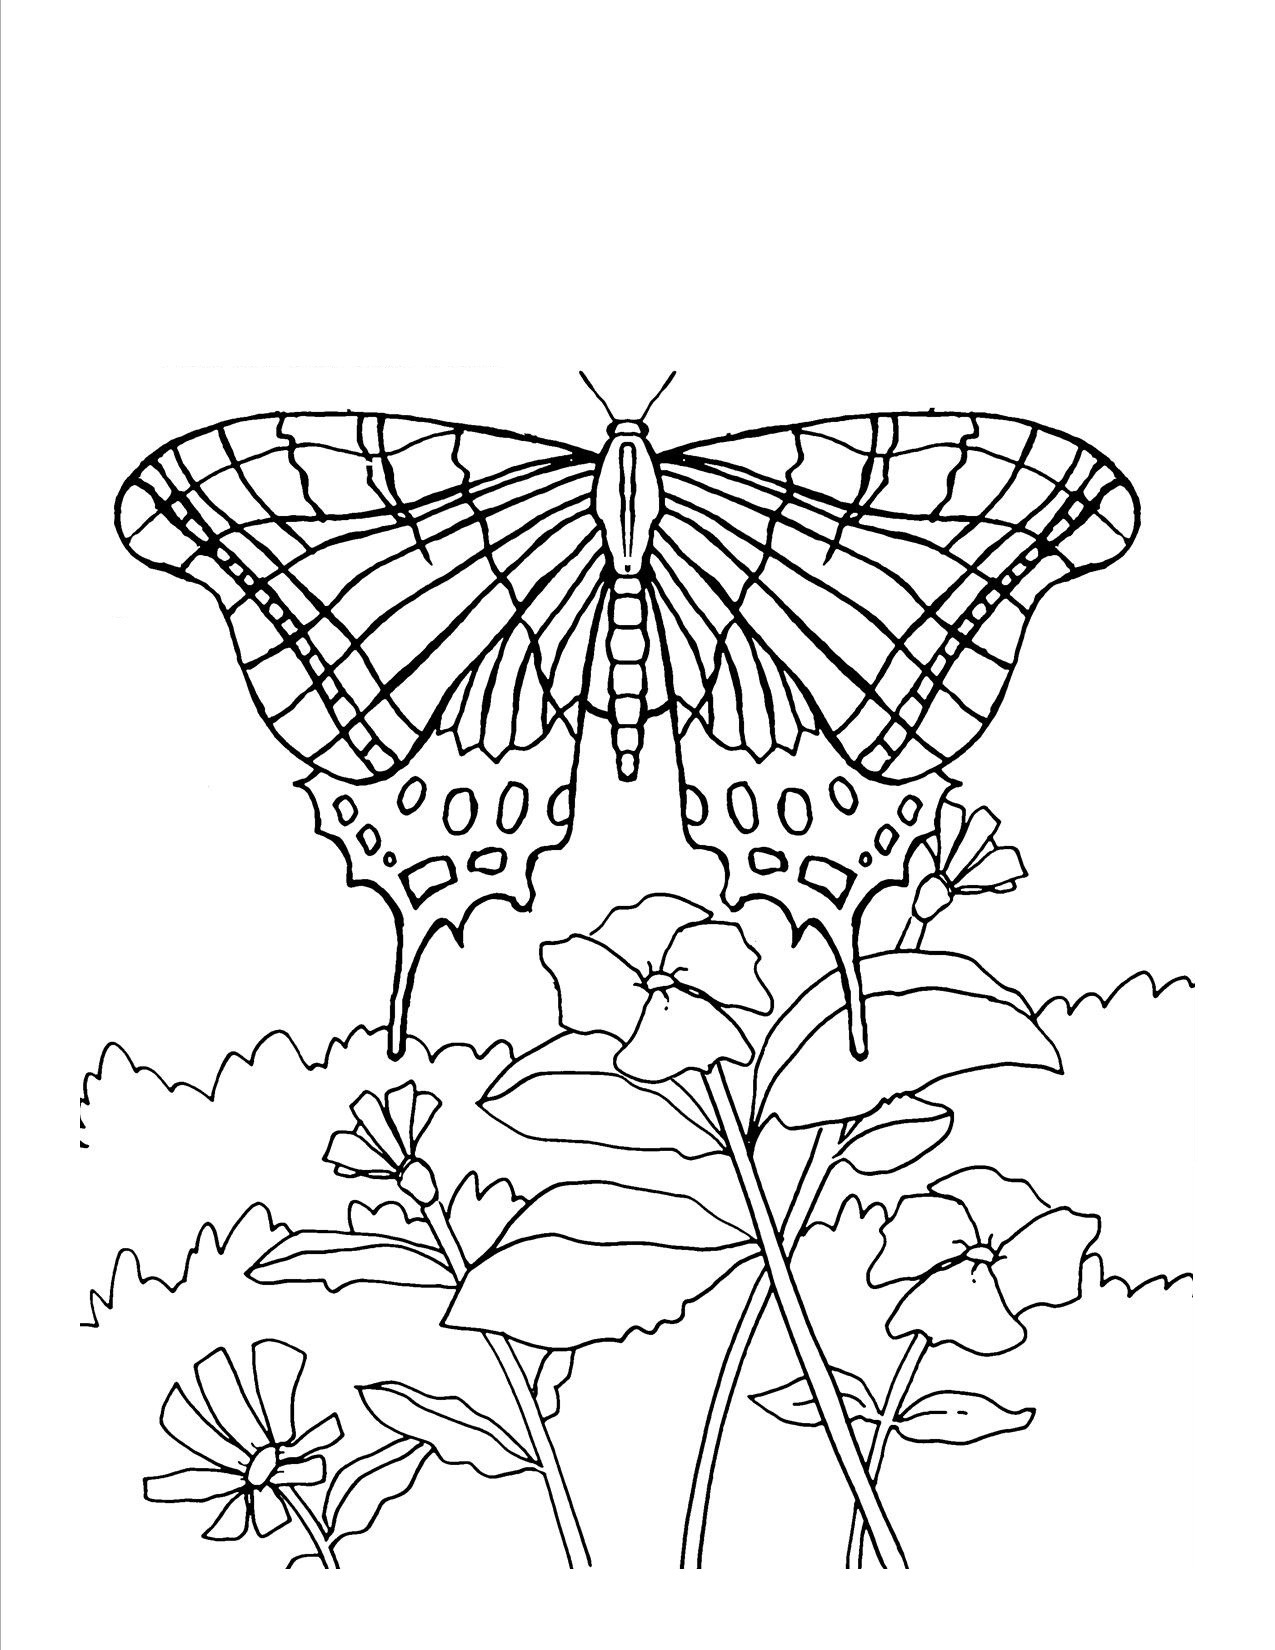 butterfly coloring pages free printable free printable butterfly coloring pages for kids coloring butterfly pages printable free